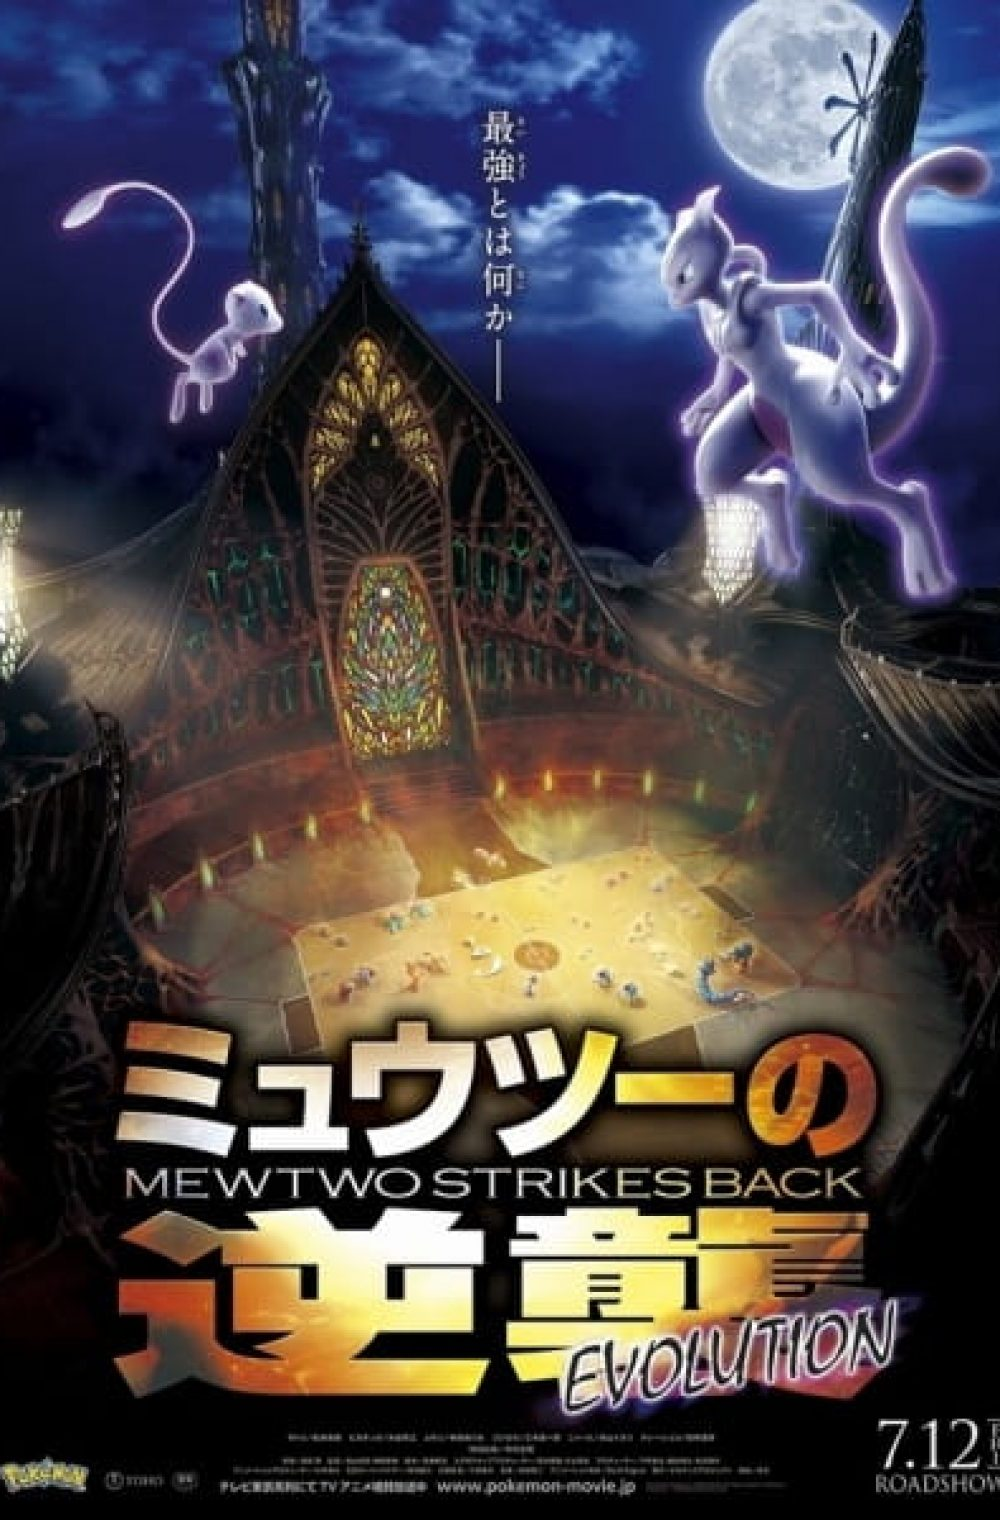 (DUB) Pokemon Movie 22: Mewtwo Strikes Back Evolution